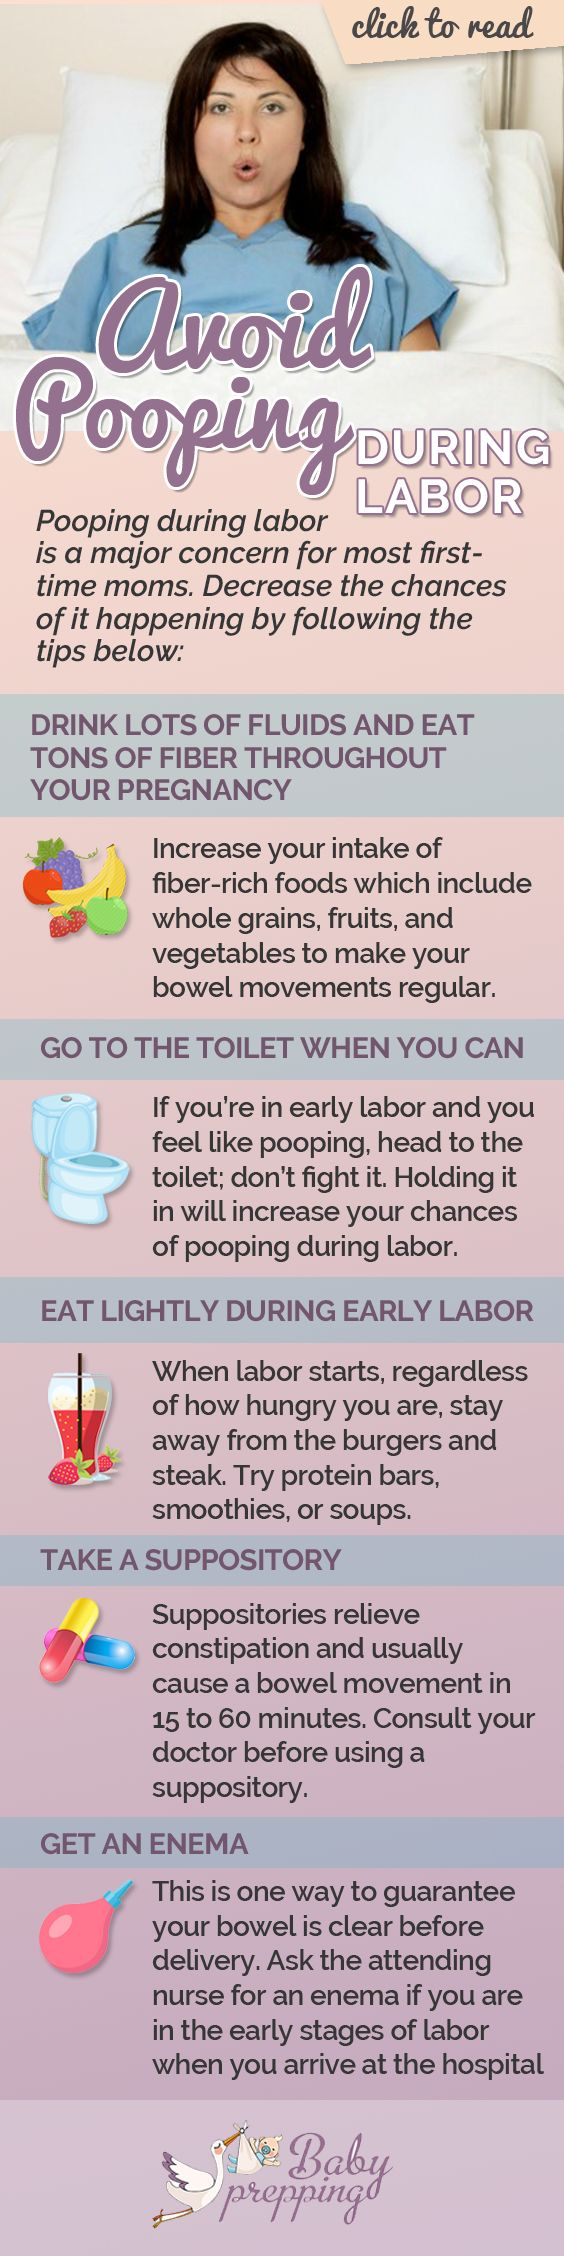 How to Avoid Pooping During Labor | Labor | Labor and Delivery | Labor Tips | Labor Preparation | Labor Day | Due Day | Birth | Childbirth | Giving Birth #labor #delivery #childbirth #tips